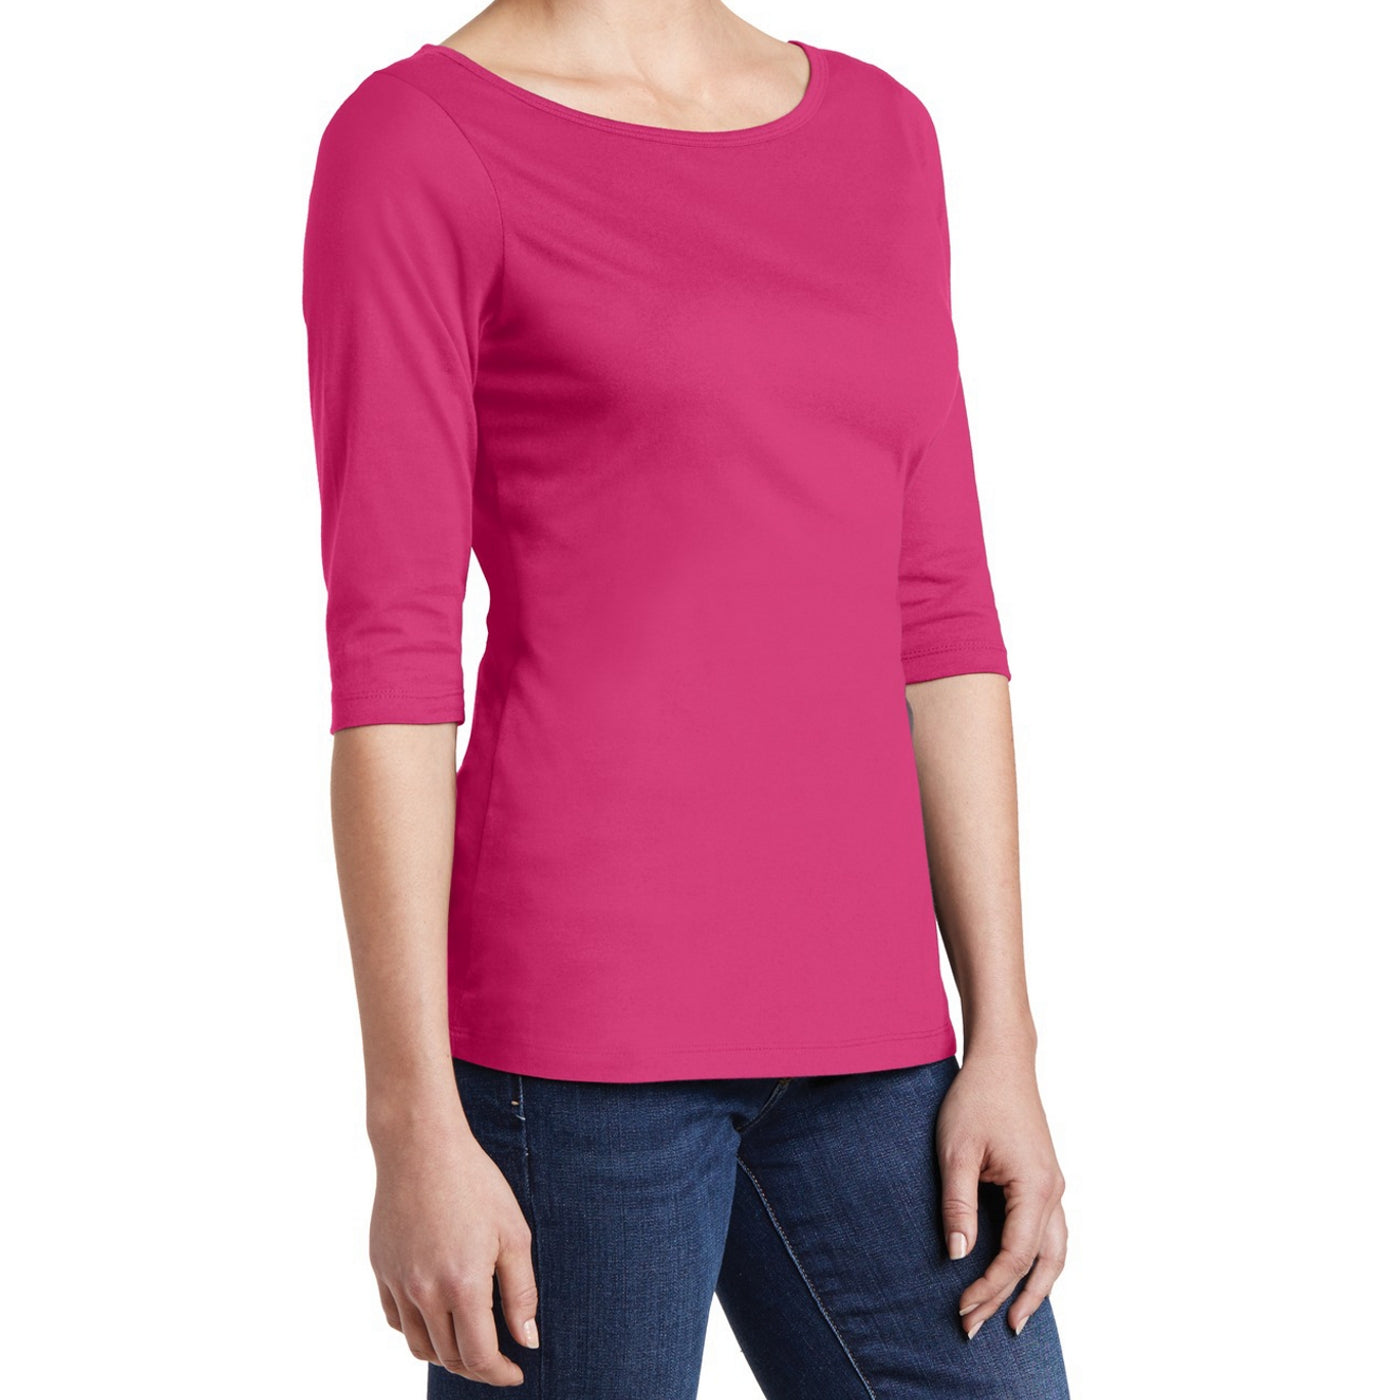 Women's Perfect Weight 3/4-Sleeve Tee - Dark Fuchsia